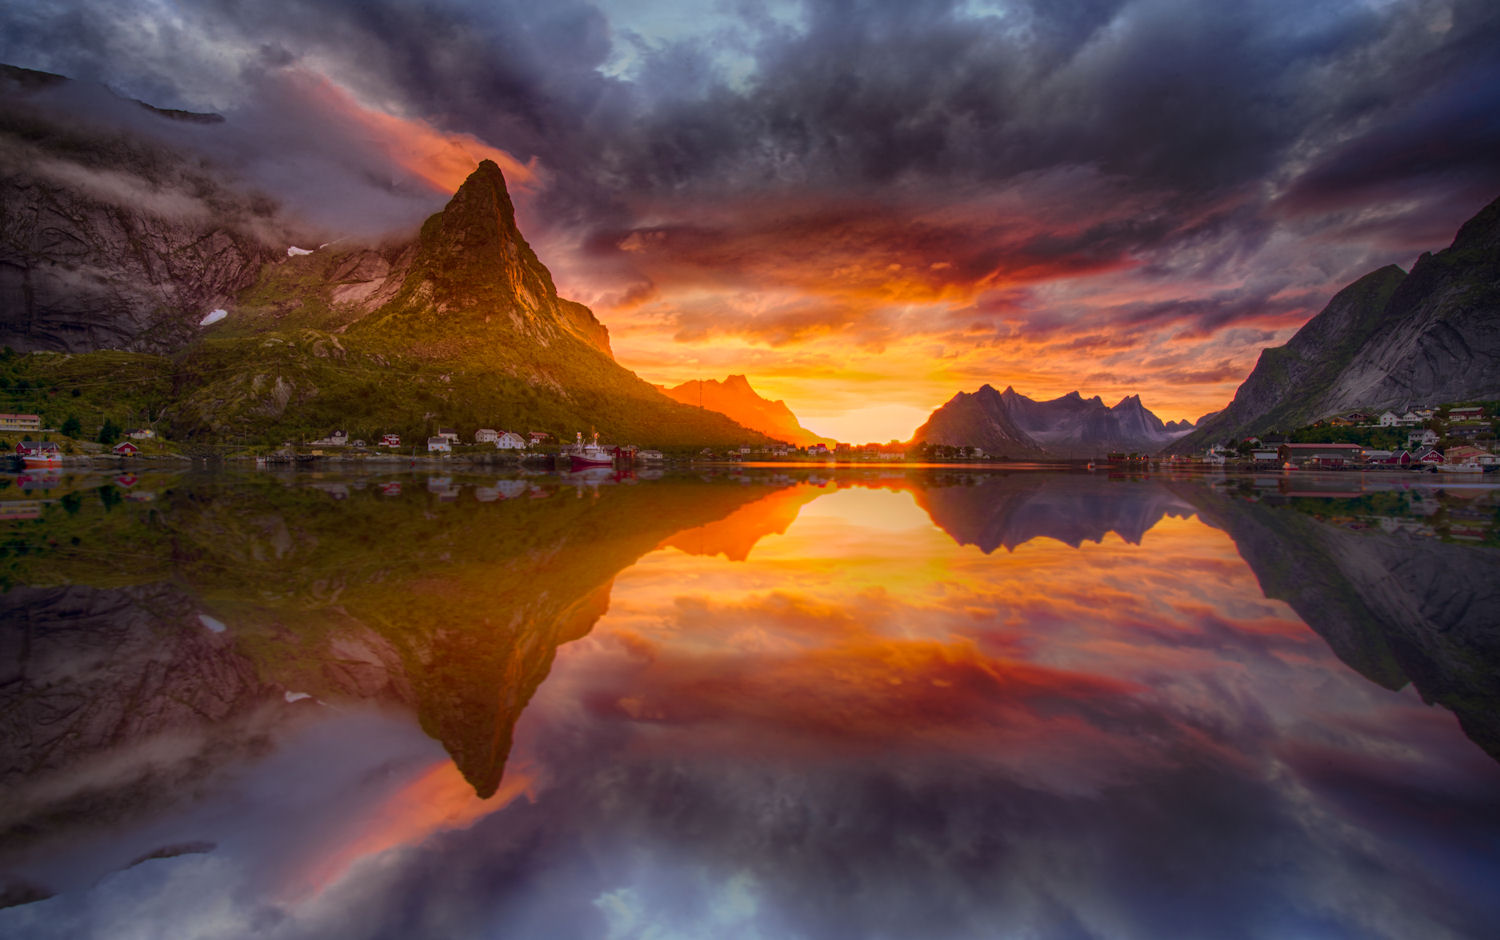 Expedition Northern Norway! Welcome to the land of the Midnight Sun in Lofoten, one of stops along the way of my journey. Photo © Jørn Allan Pedersen and VisitNorway.com. Unauthorized use is prohibited.